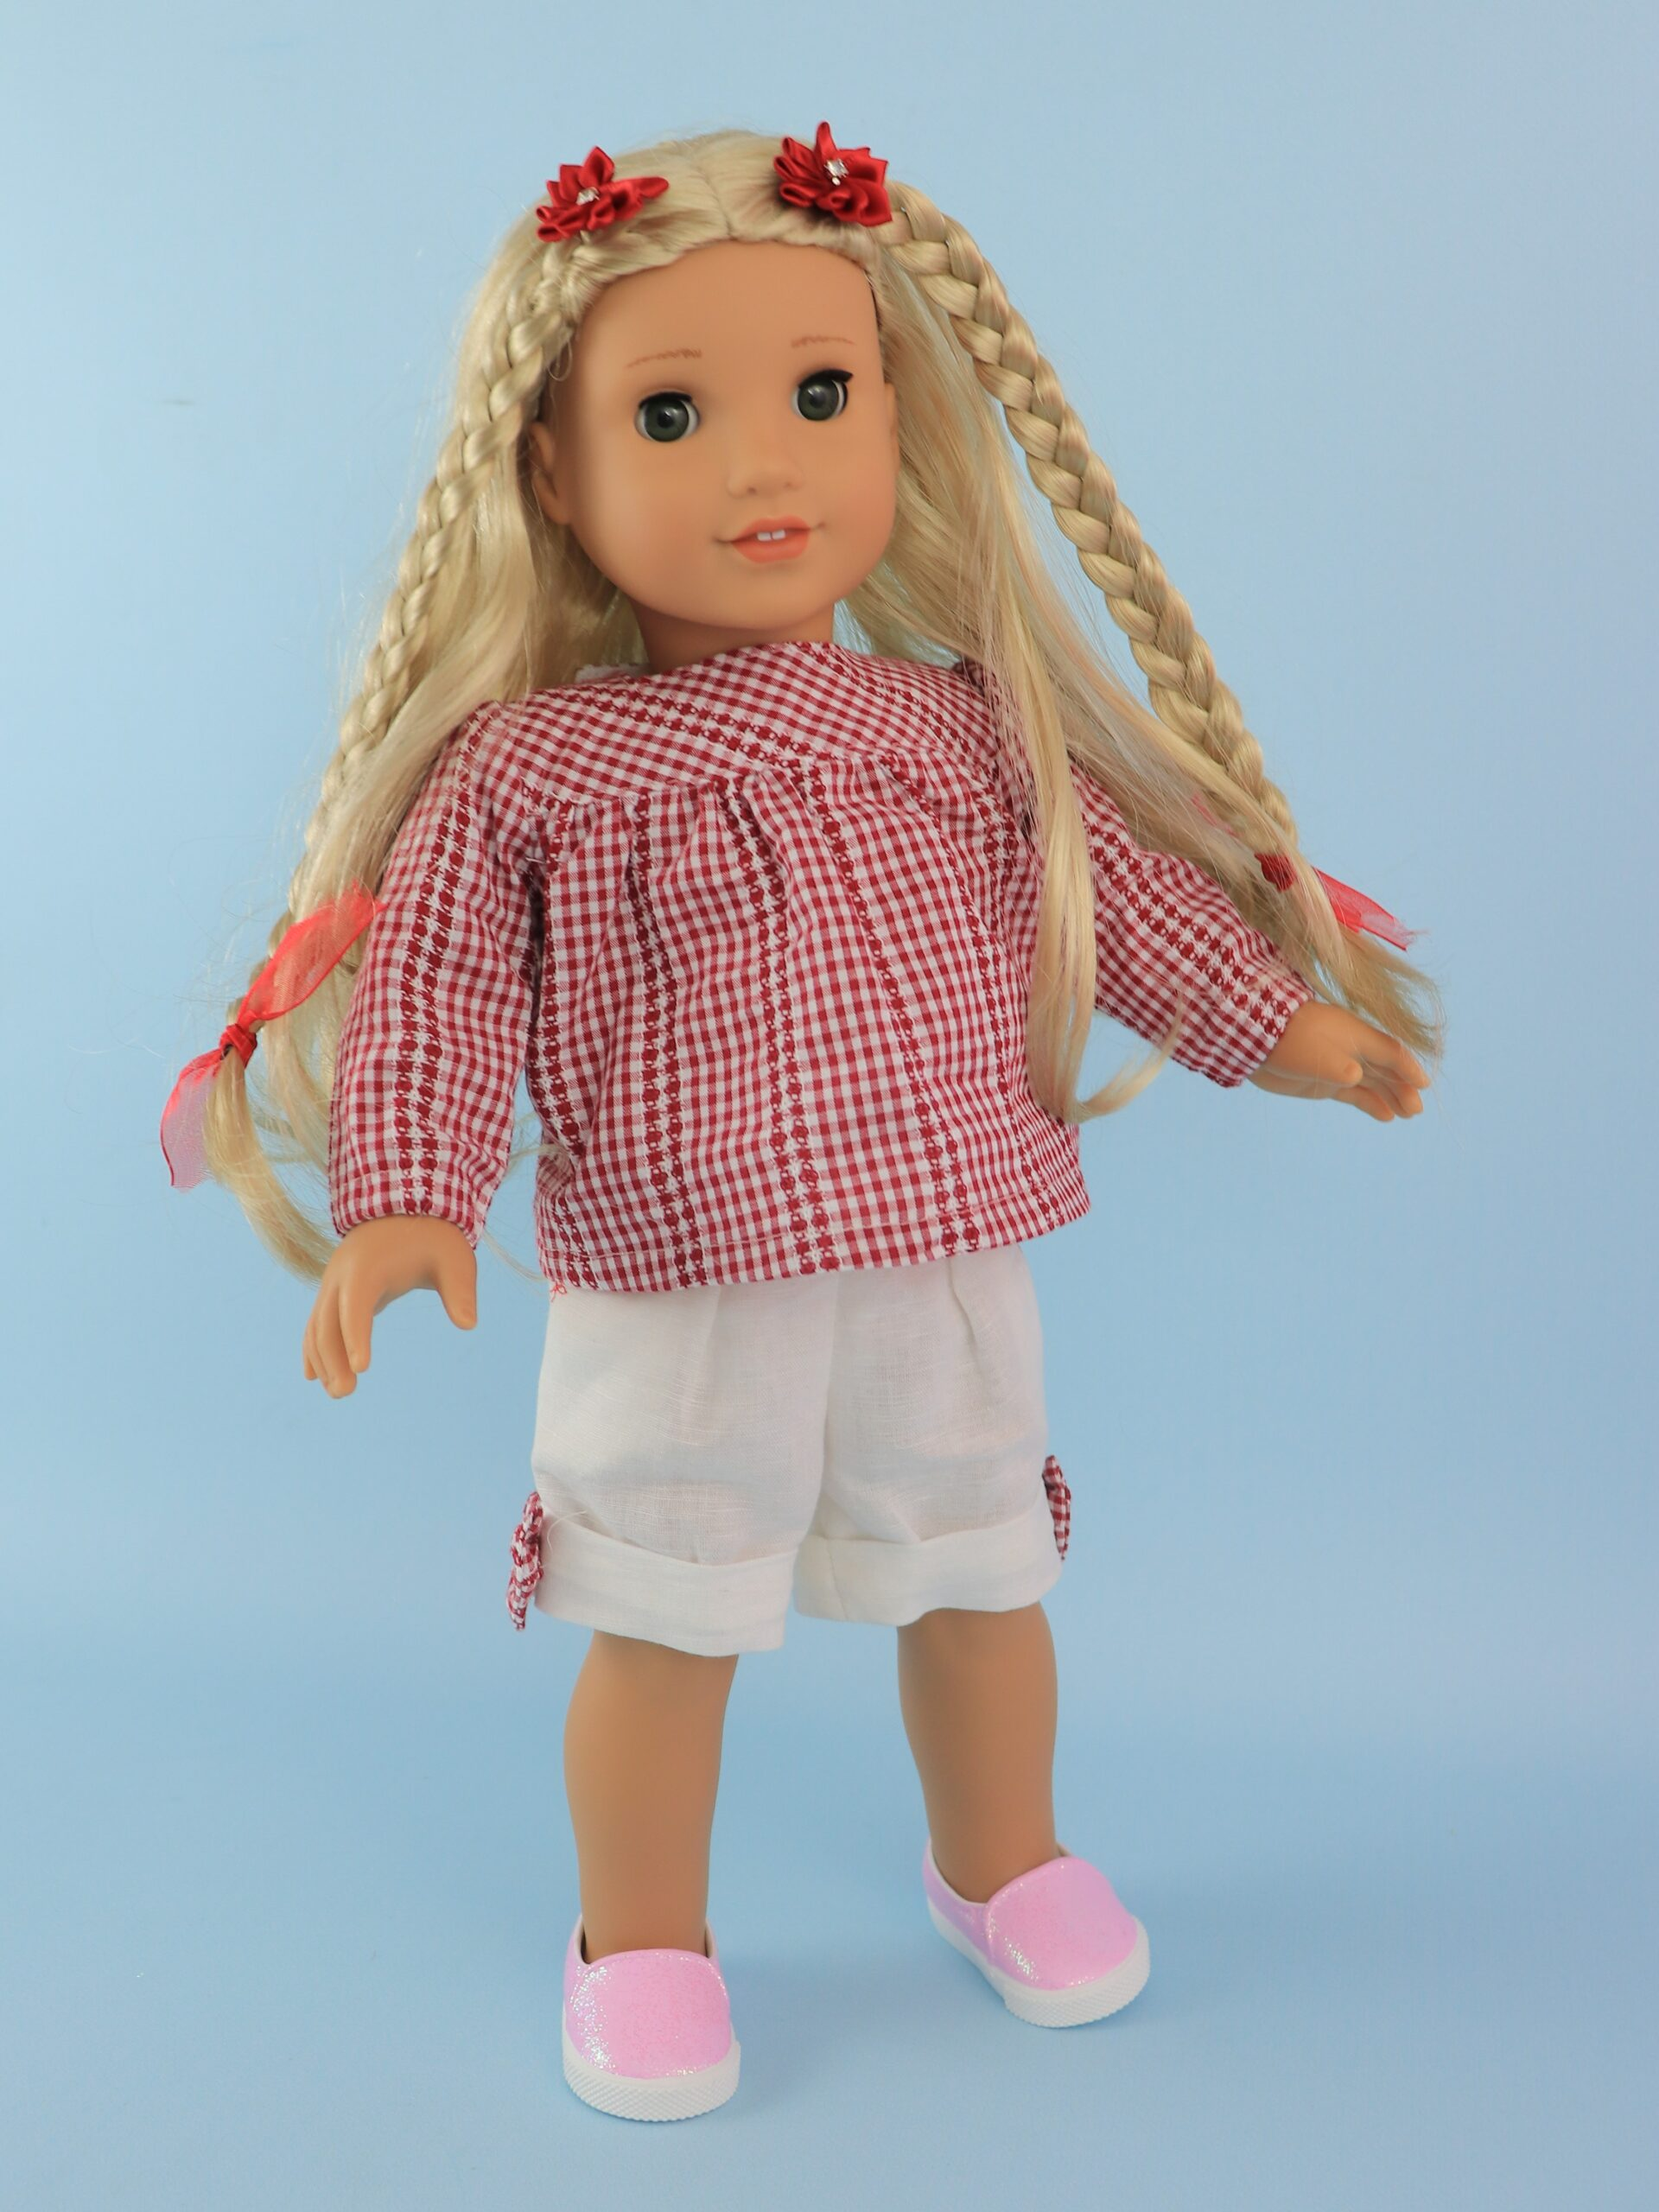 shorts and blouse pdf doll sewing pattern, Frocks & Frolics, American Doll